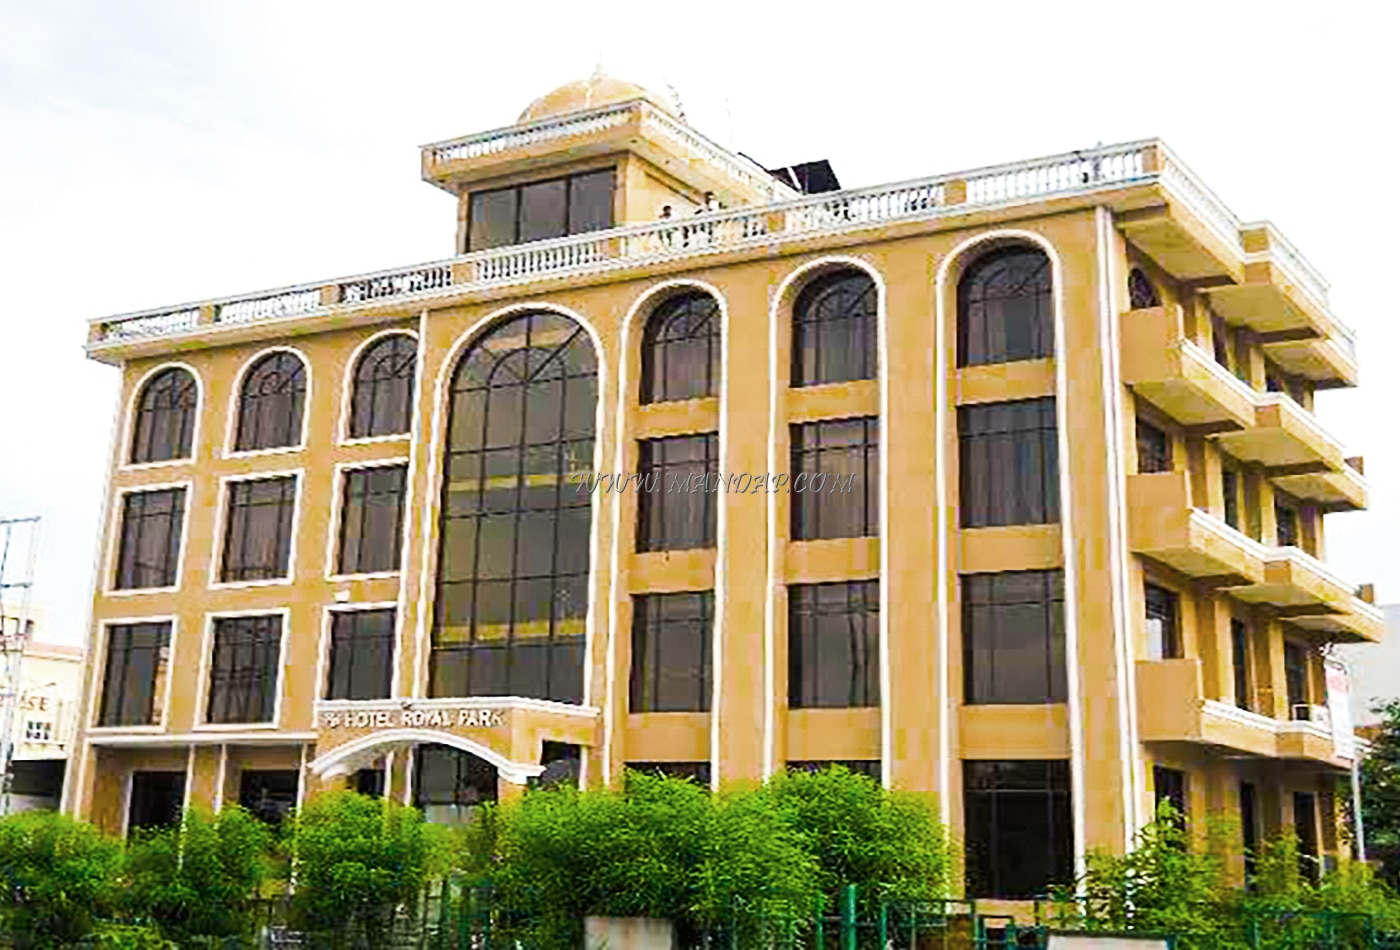 Find More Banquet Halls in Indirapuram